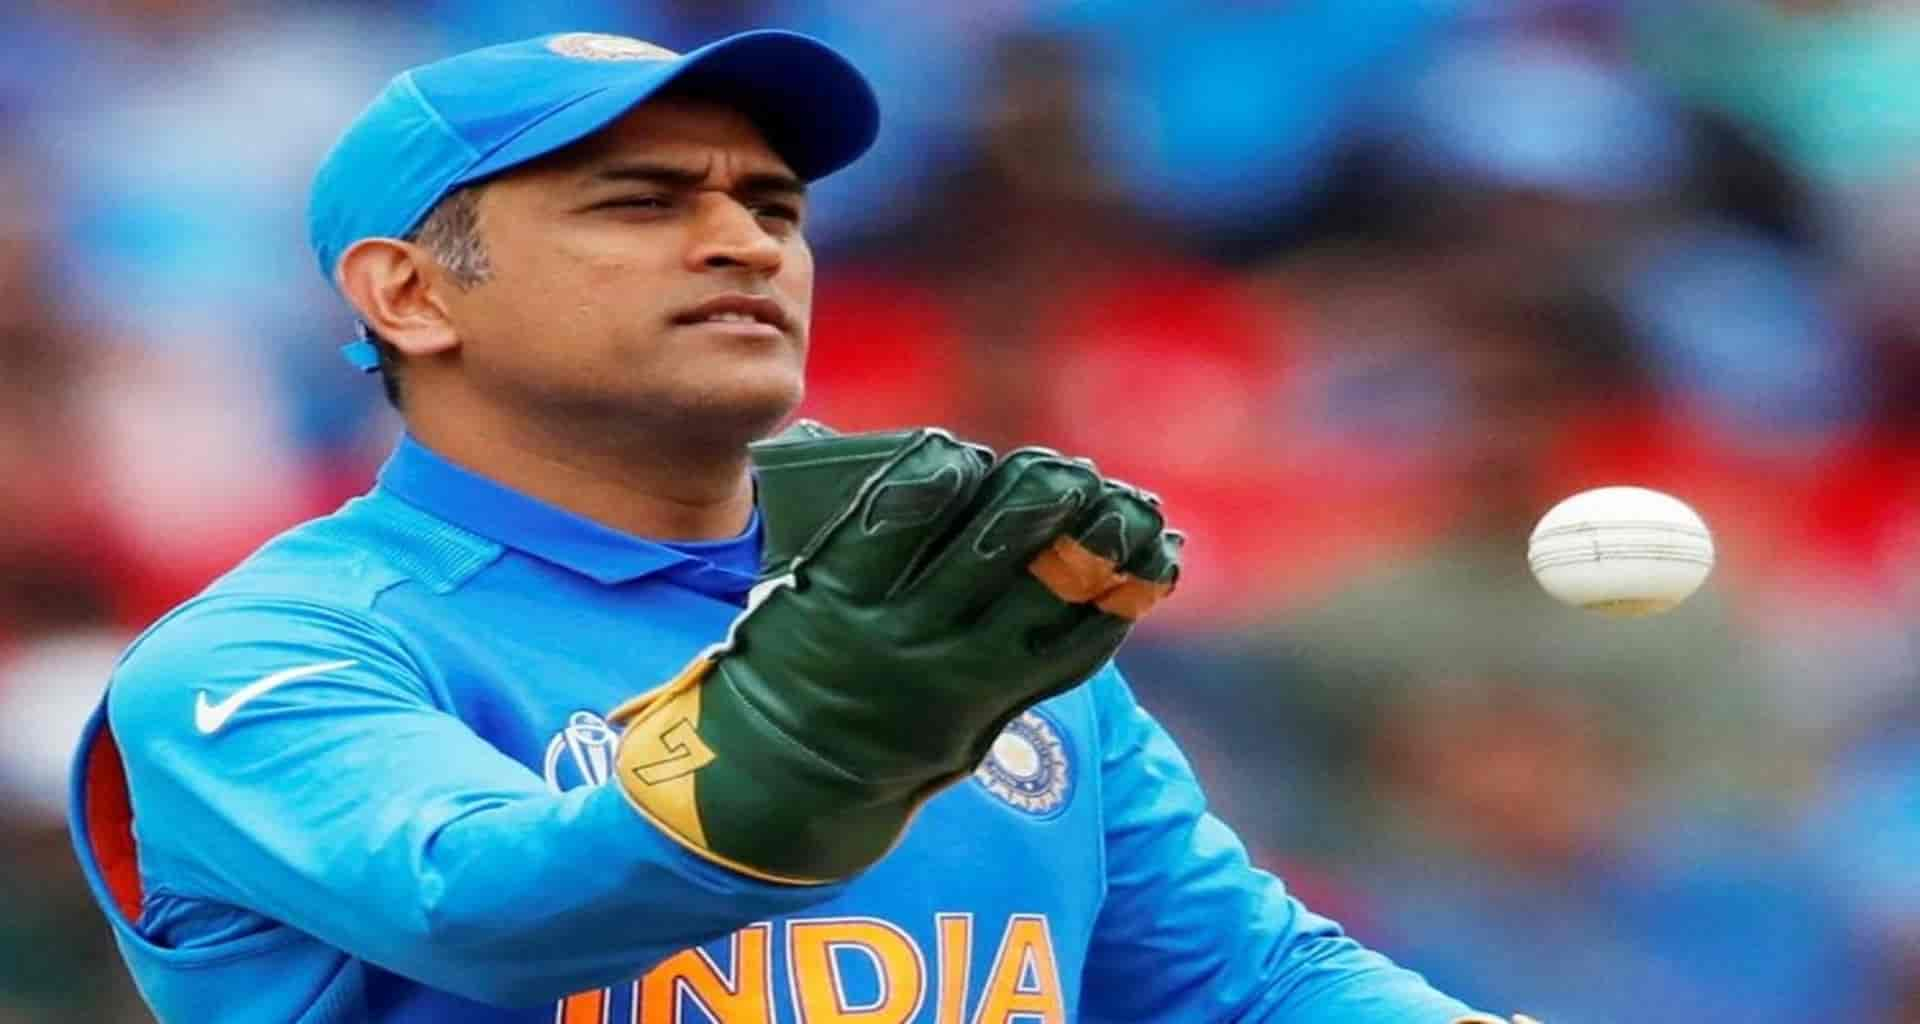 MS Dhoni has announced retirement from the International Cricket